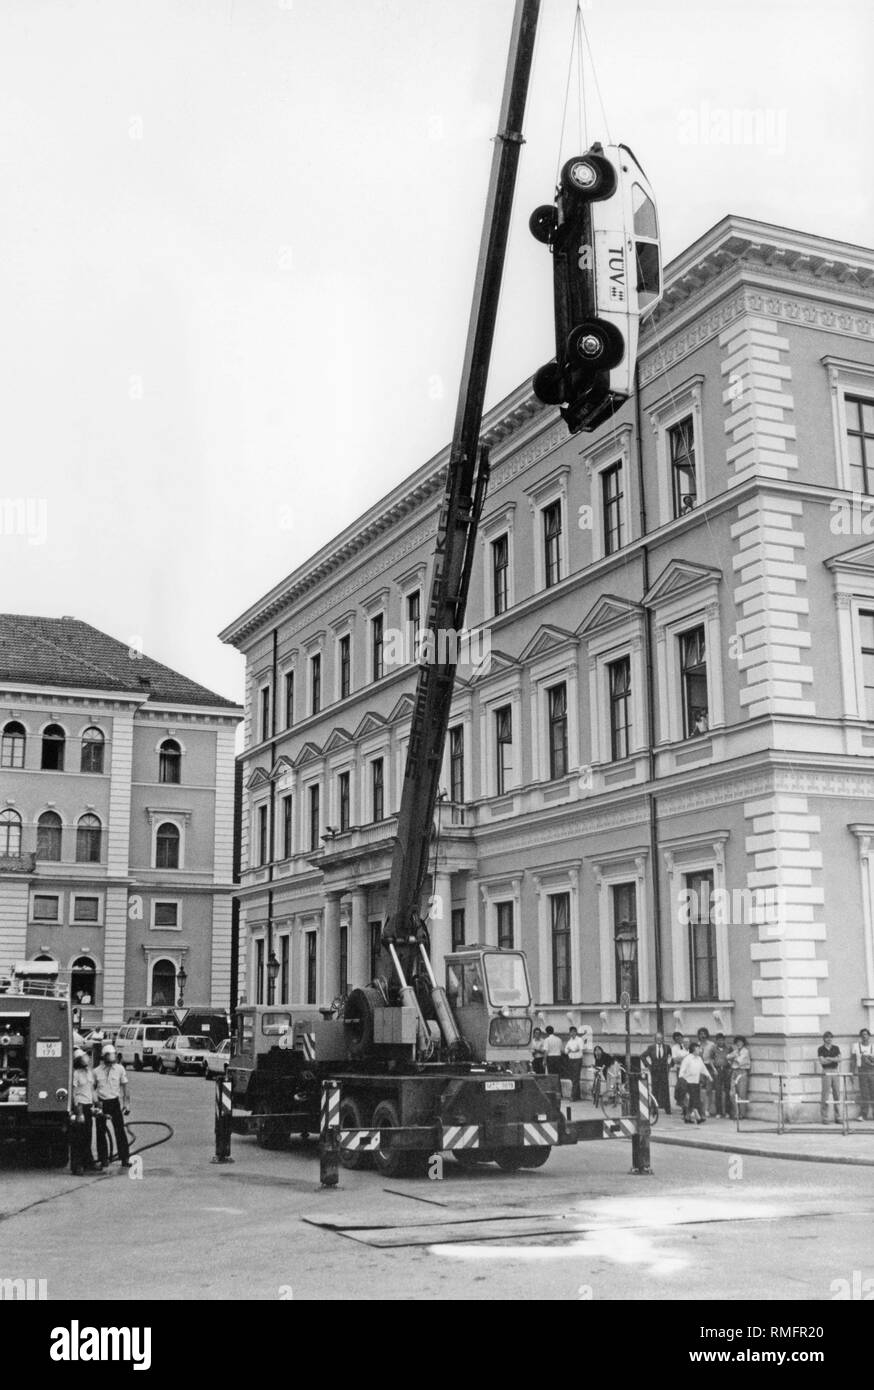 Public crash test of TUV Bayern. A VW Golf I is dropped by a crane from a height of 10 meters. The impact corresponds roughly to a frontal accident at 50 km / h. - Stock Image